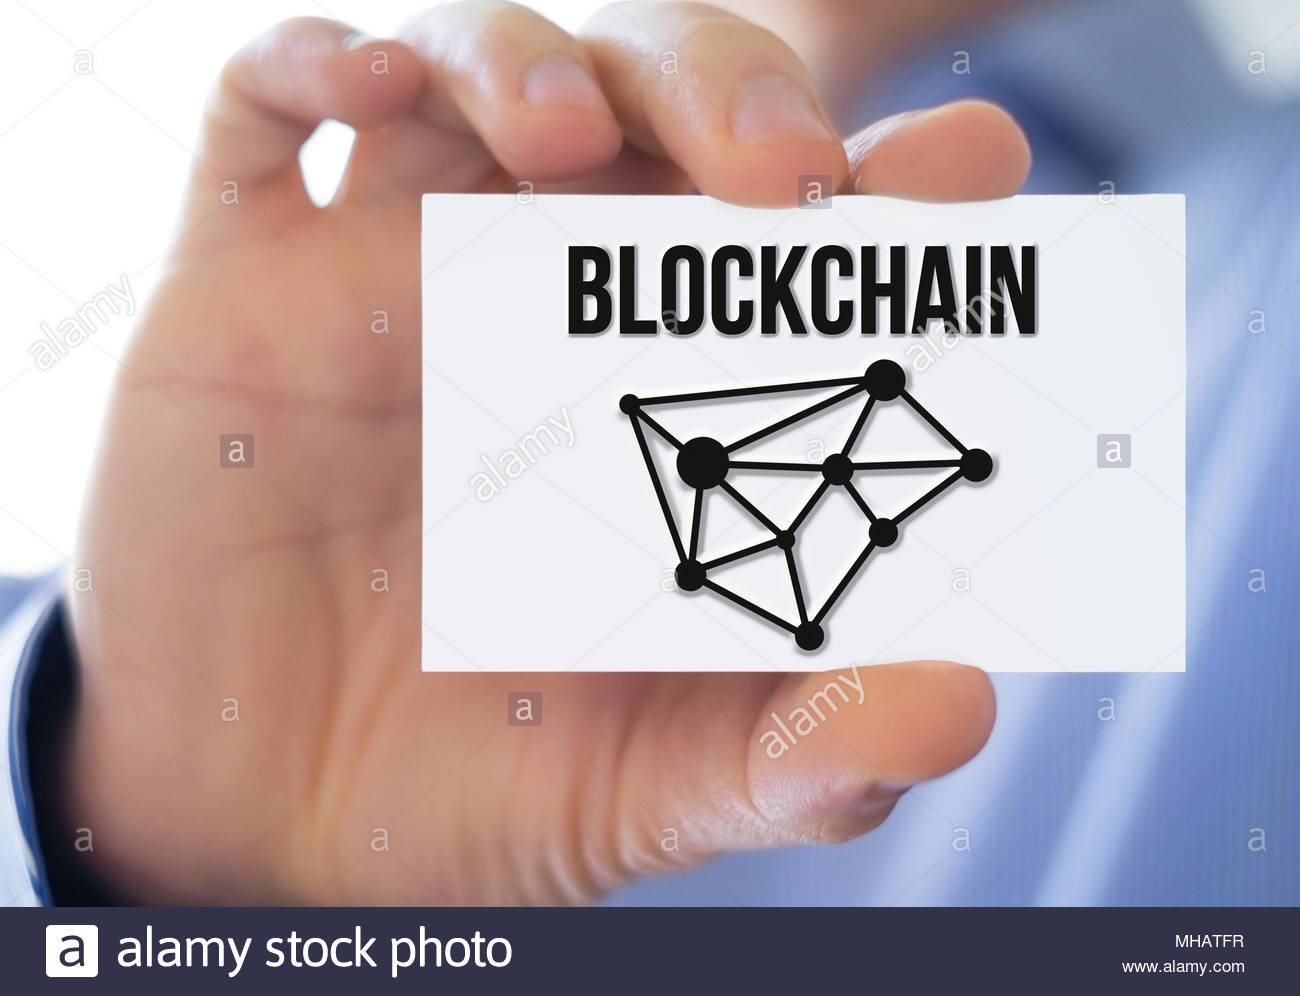 Cryptocurrency and blockchain concept - Stock Image